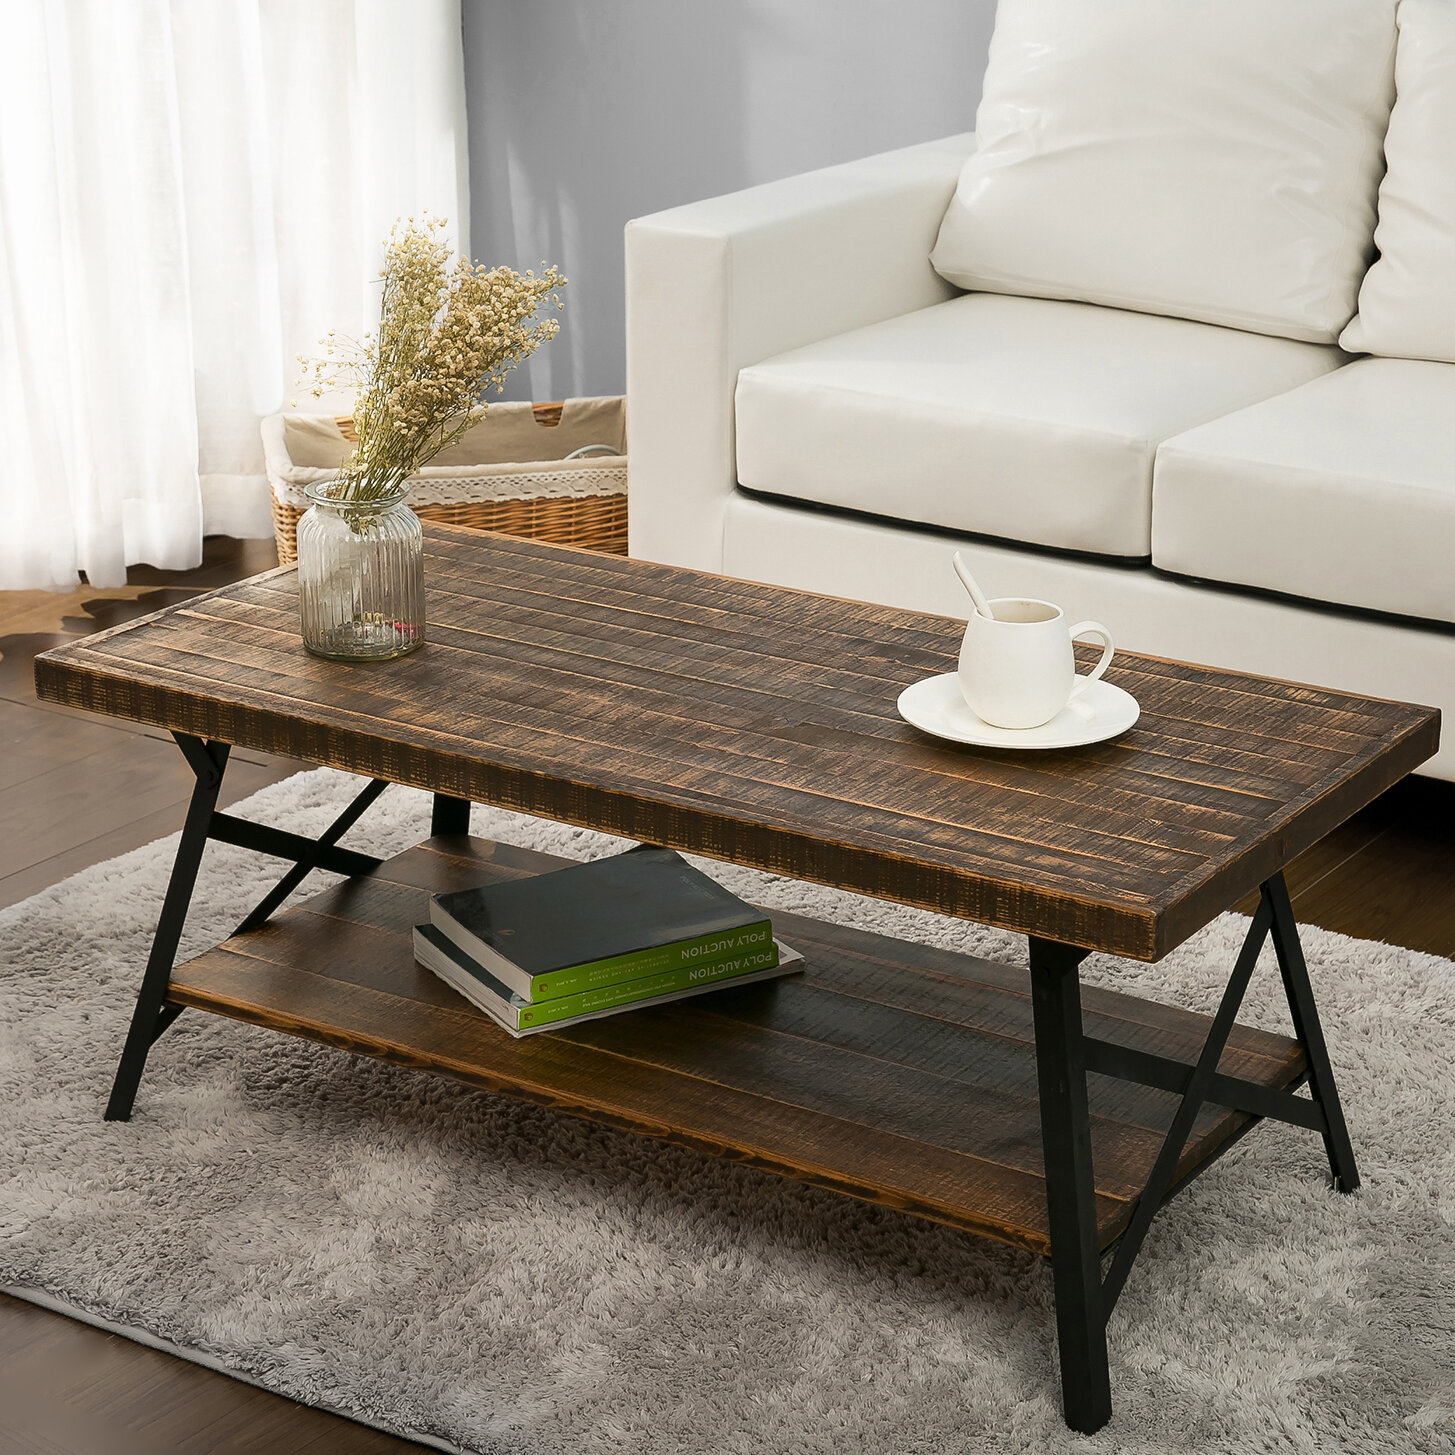 Reclaimed Wood Coffee Tables You ll Love